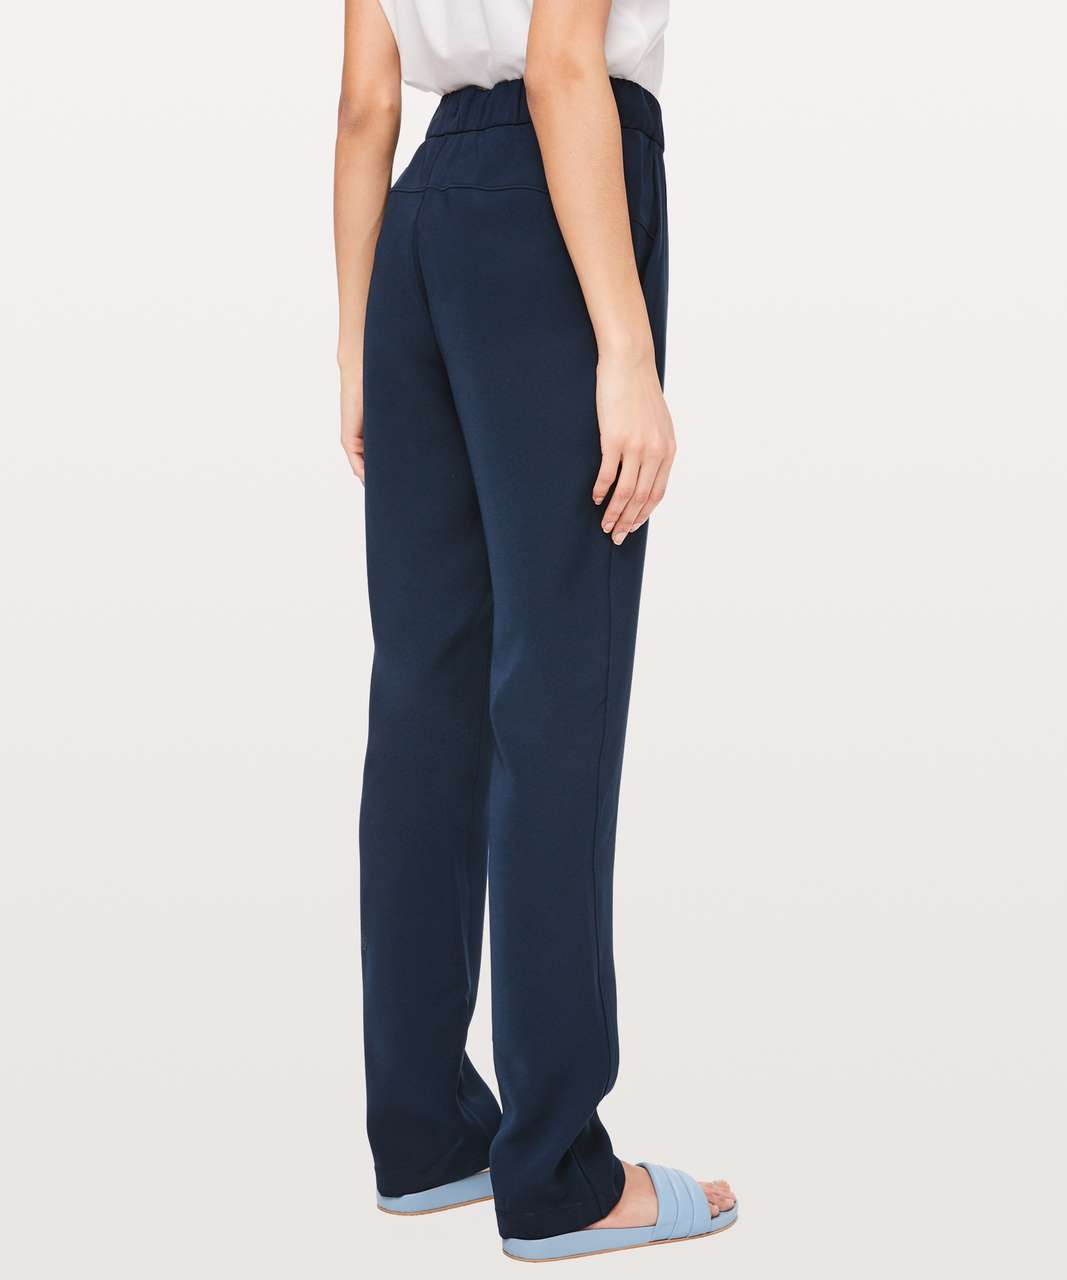 "Lululemon On The Fly Pant Woven Tall 33"" - True Navy"